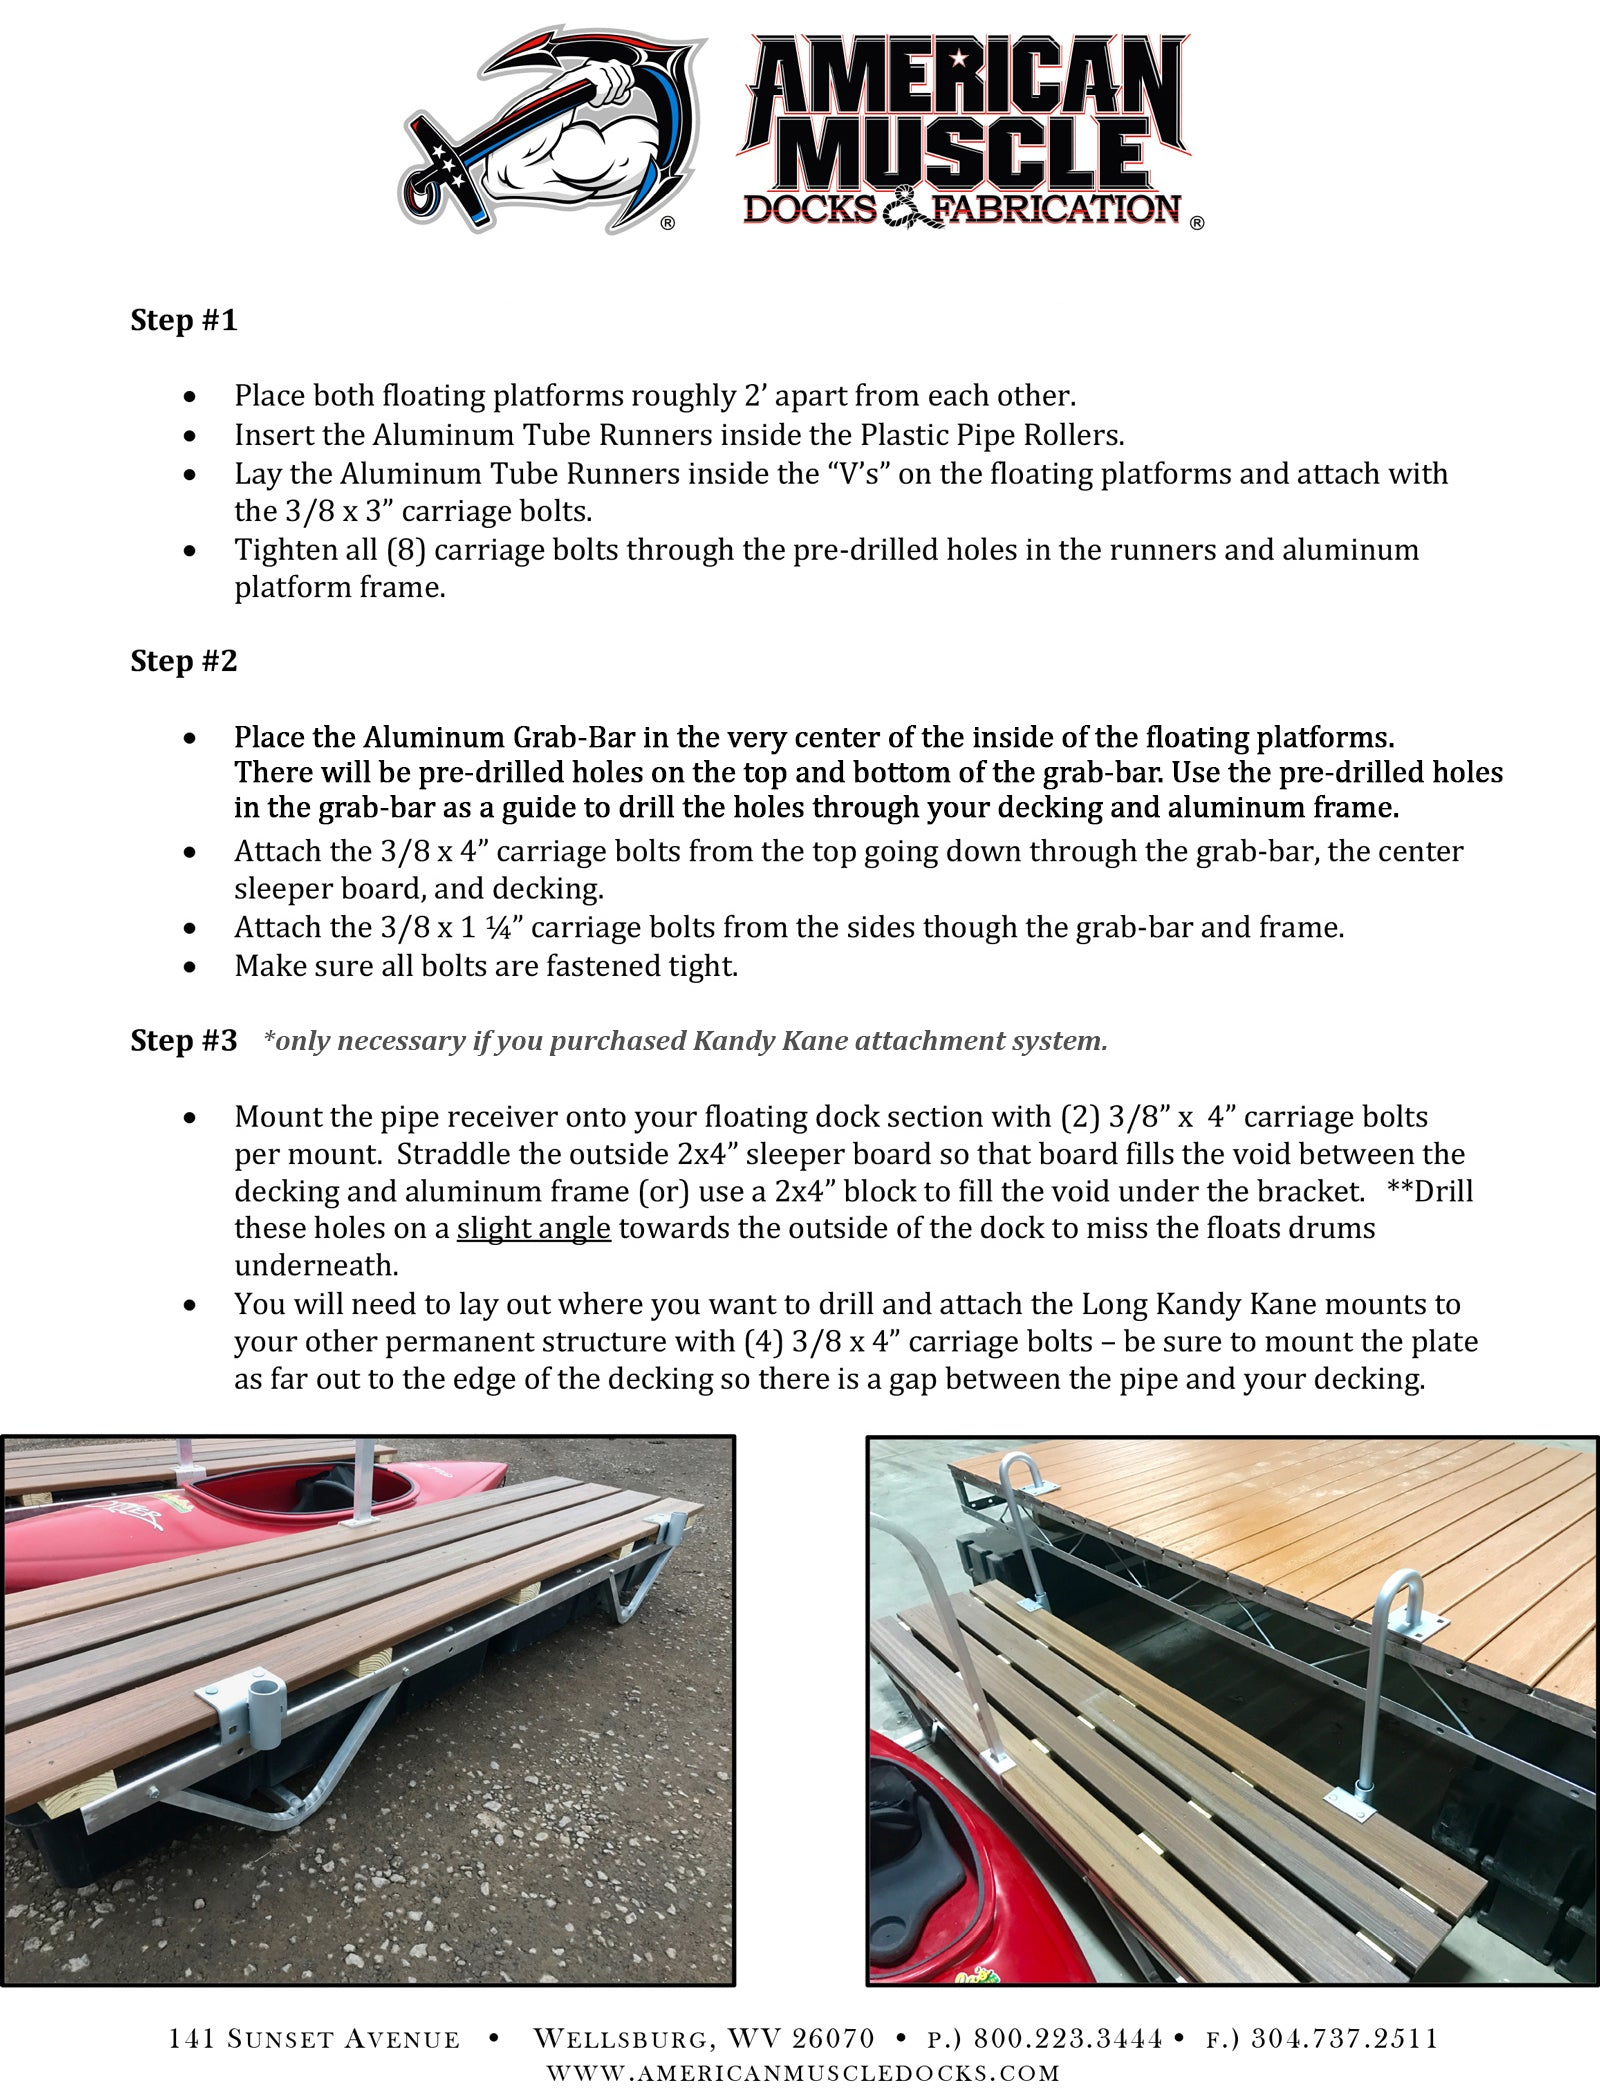 American Muscle Docks Kayak Launch Dock Instructions - Scroll to bottom for text-only instructions